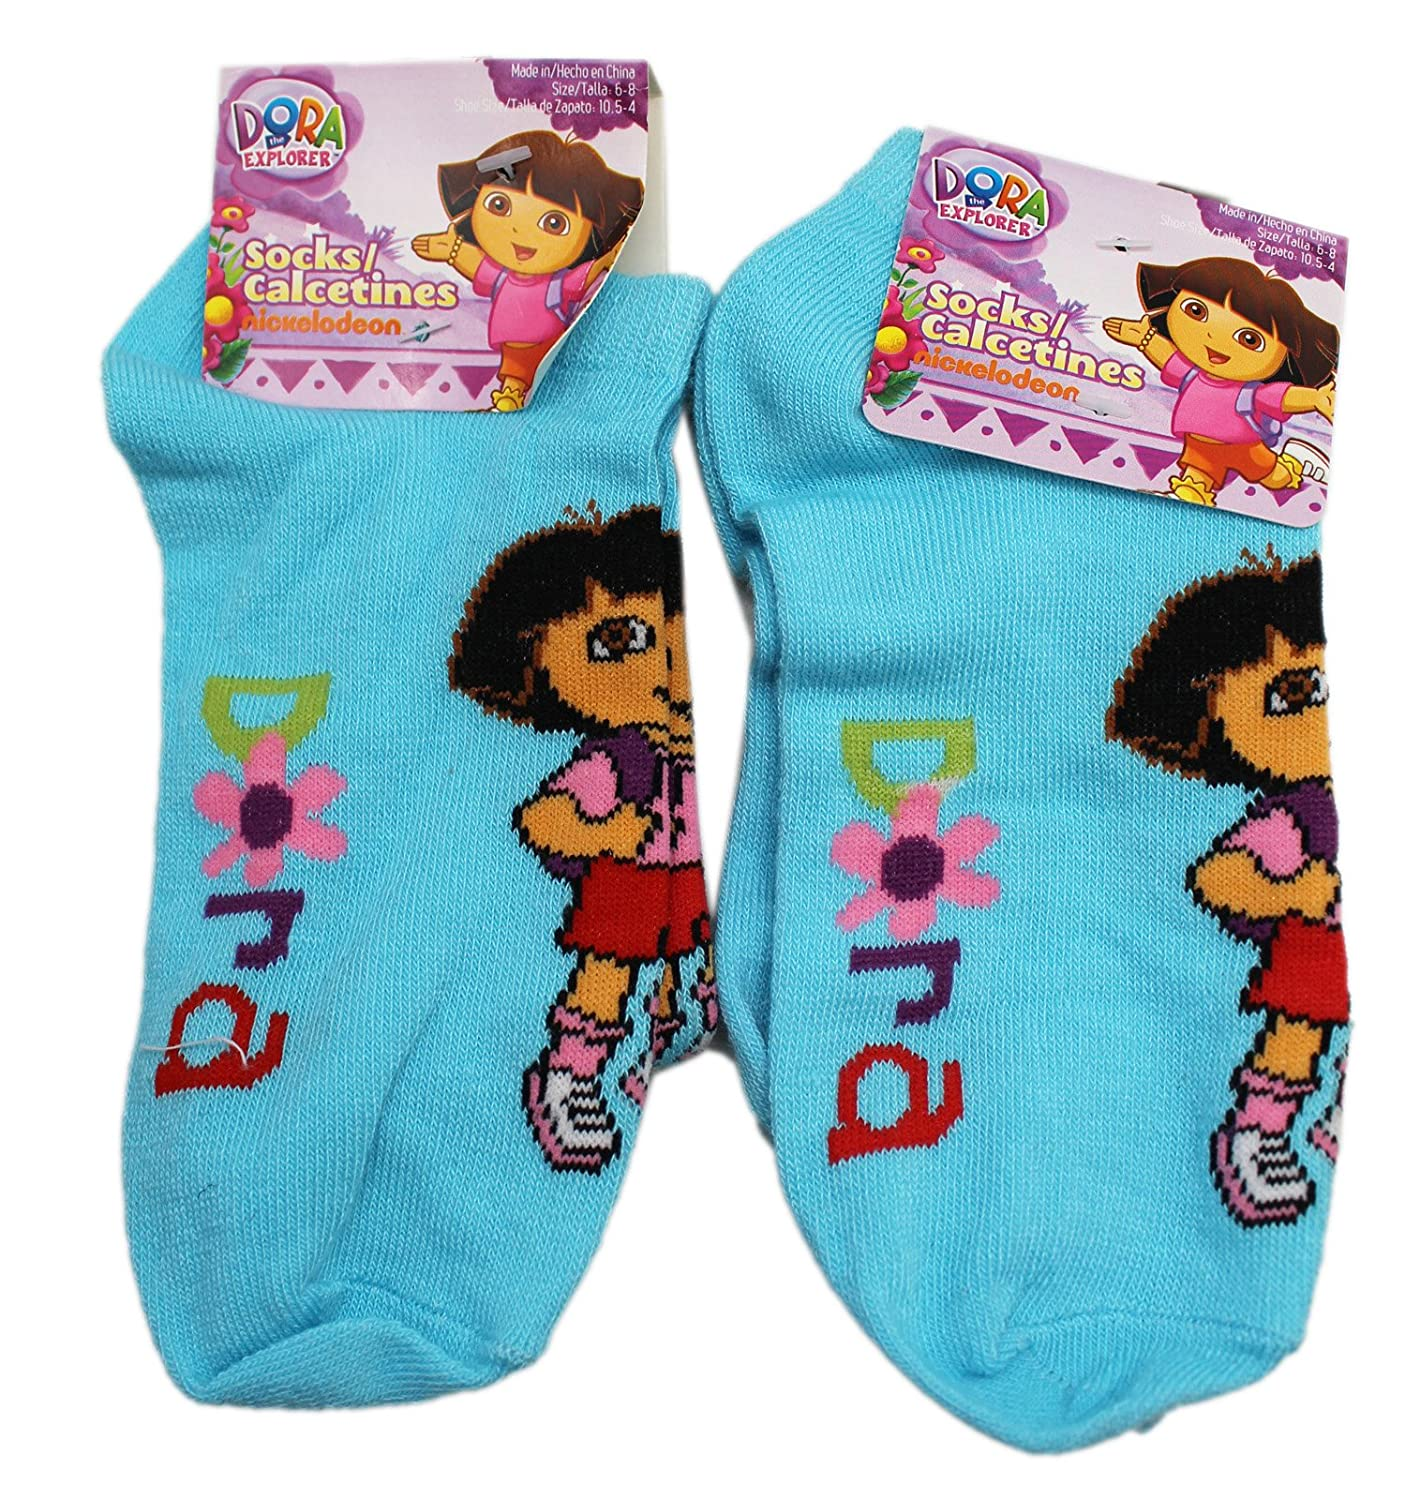 Amazon.com: Dora the Explorer Light Blue Floral Stylized Kids Socks (1 Pair, Size 6-8): Clothing